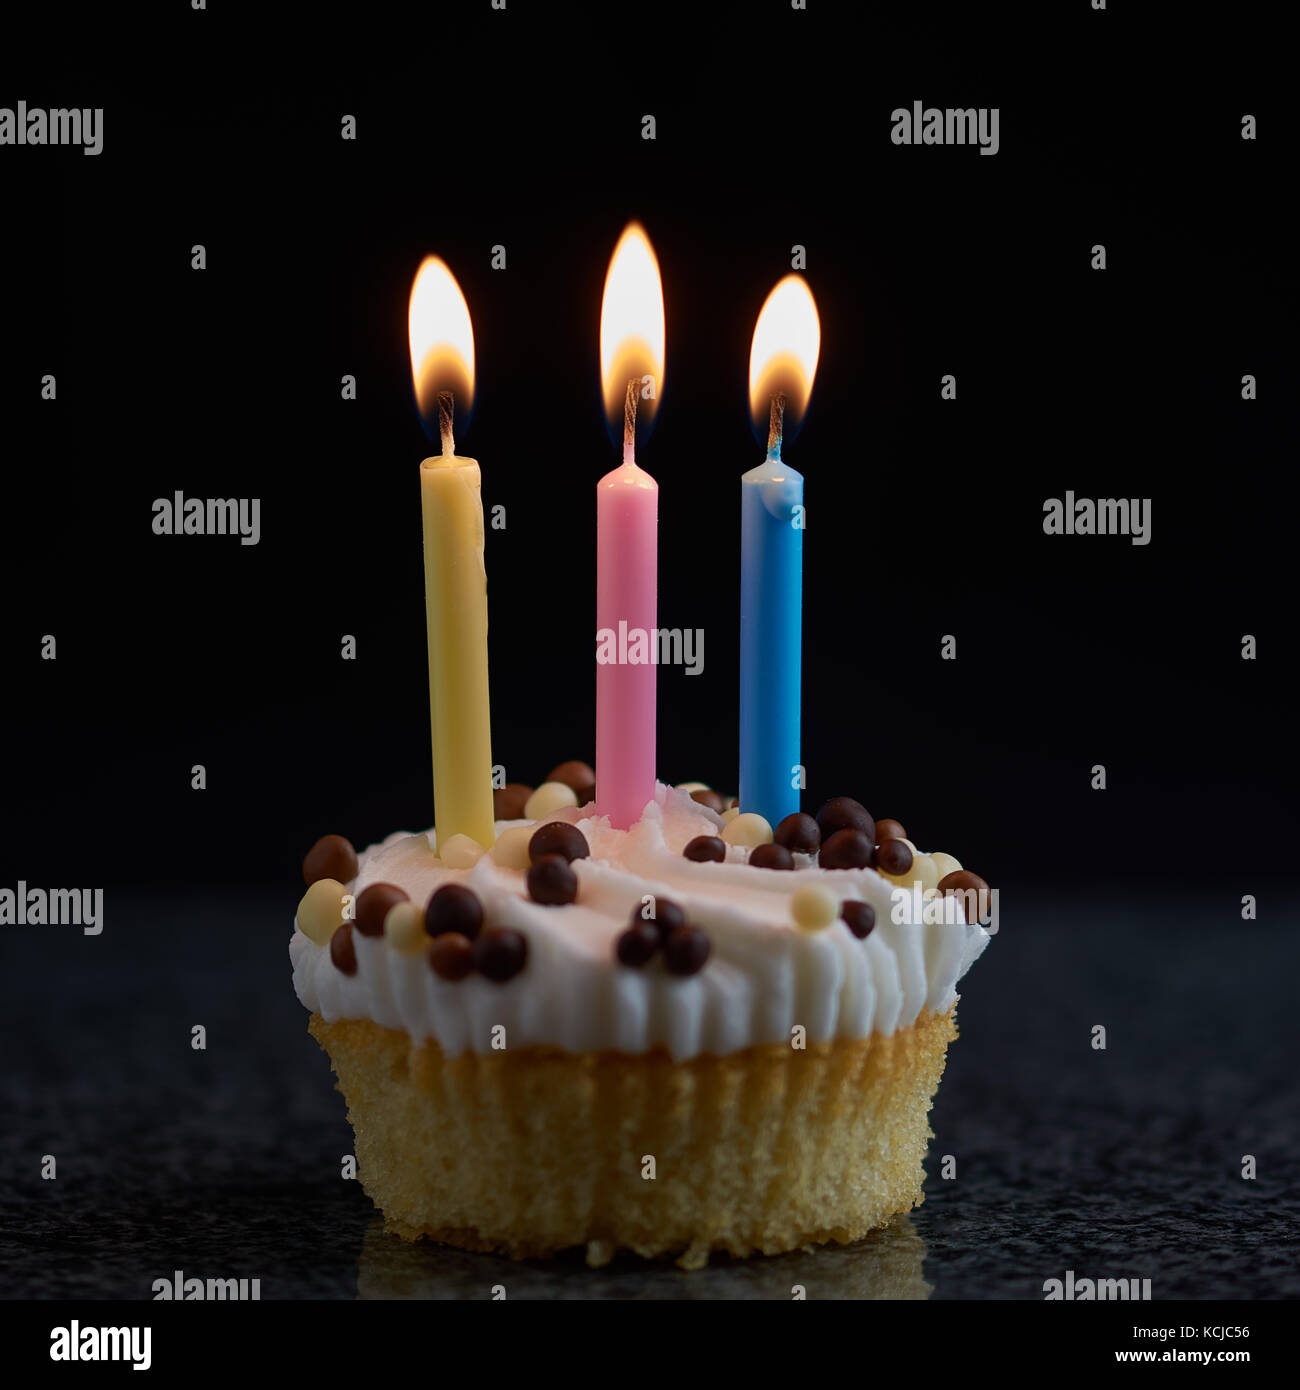 3 Candles Stock Photos 3 Candles Stock Images Alamy